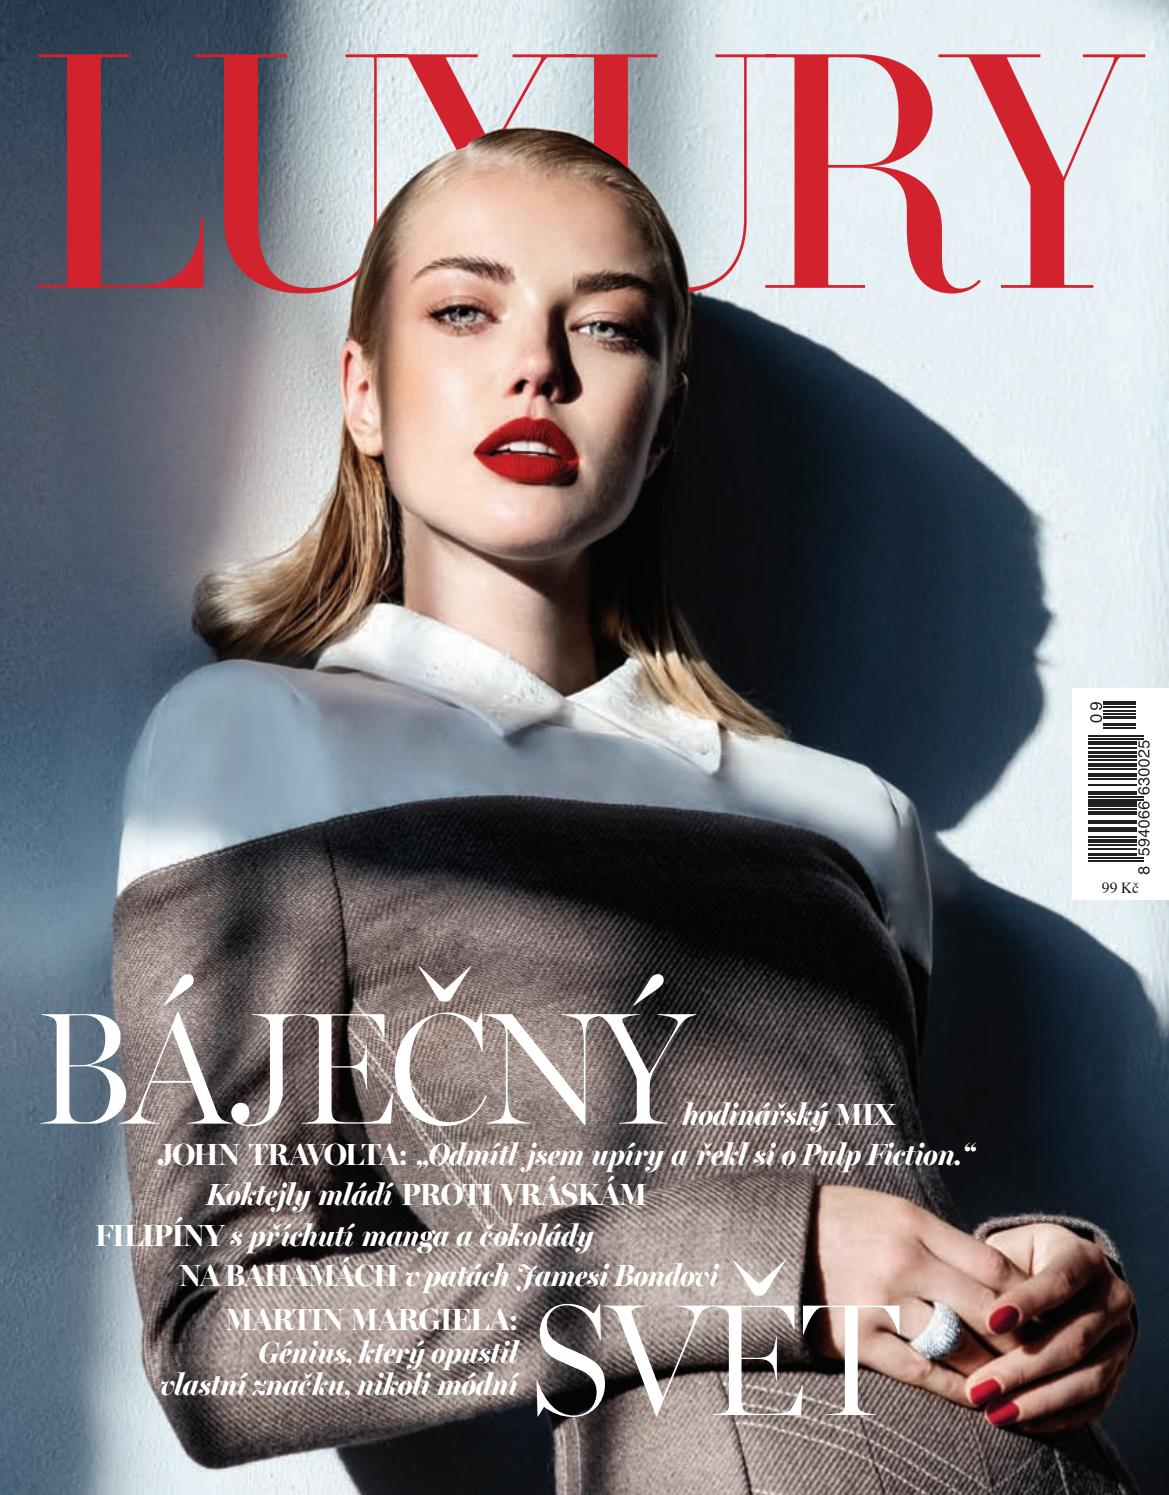 Luxury 09 2018 by LuxuryGuideCZ - issuu 9e612a37c8